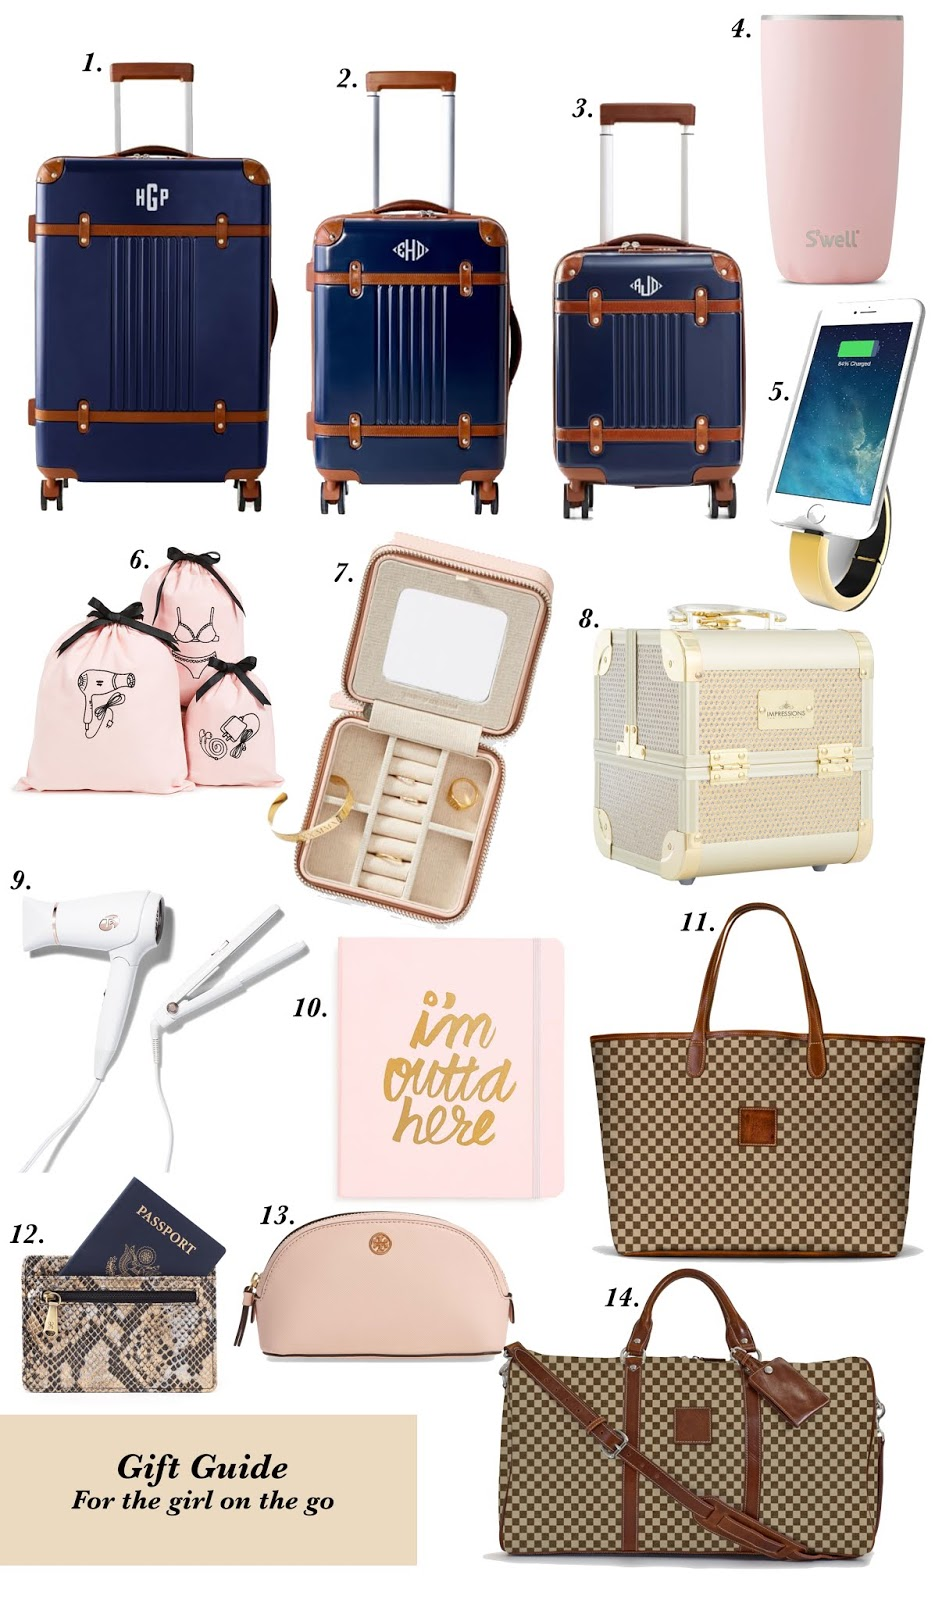 Gift Guide for the Girl On the Go - Something Delightful Blog